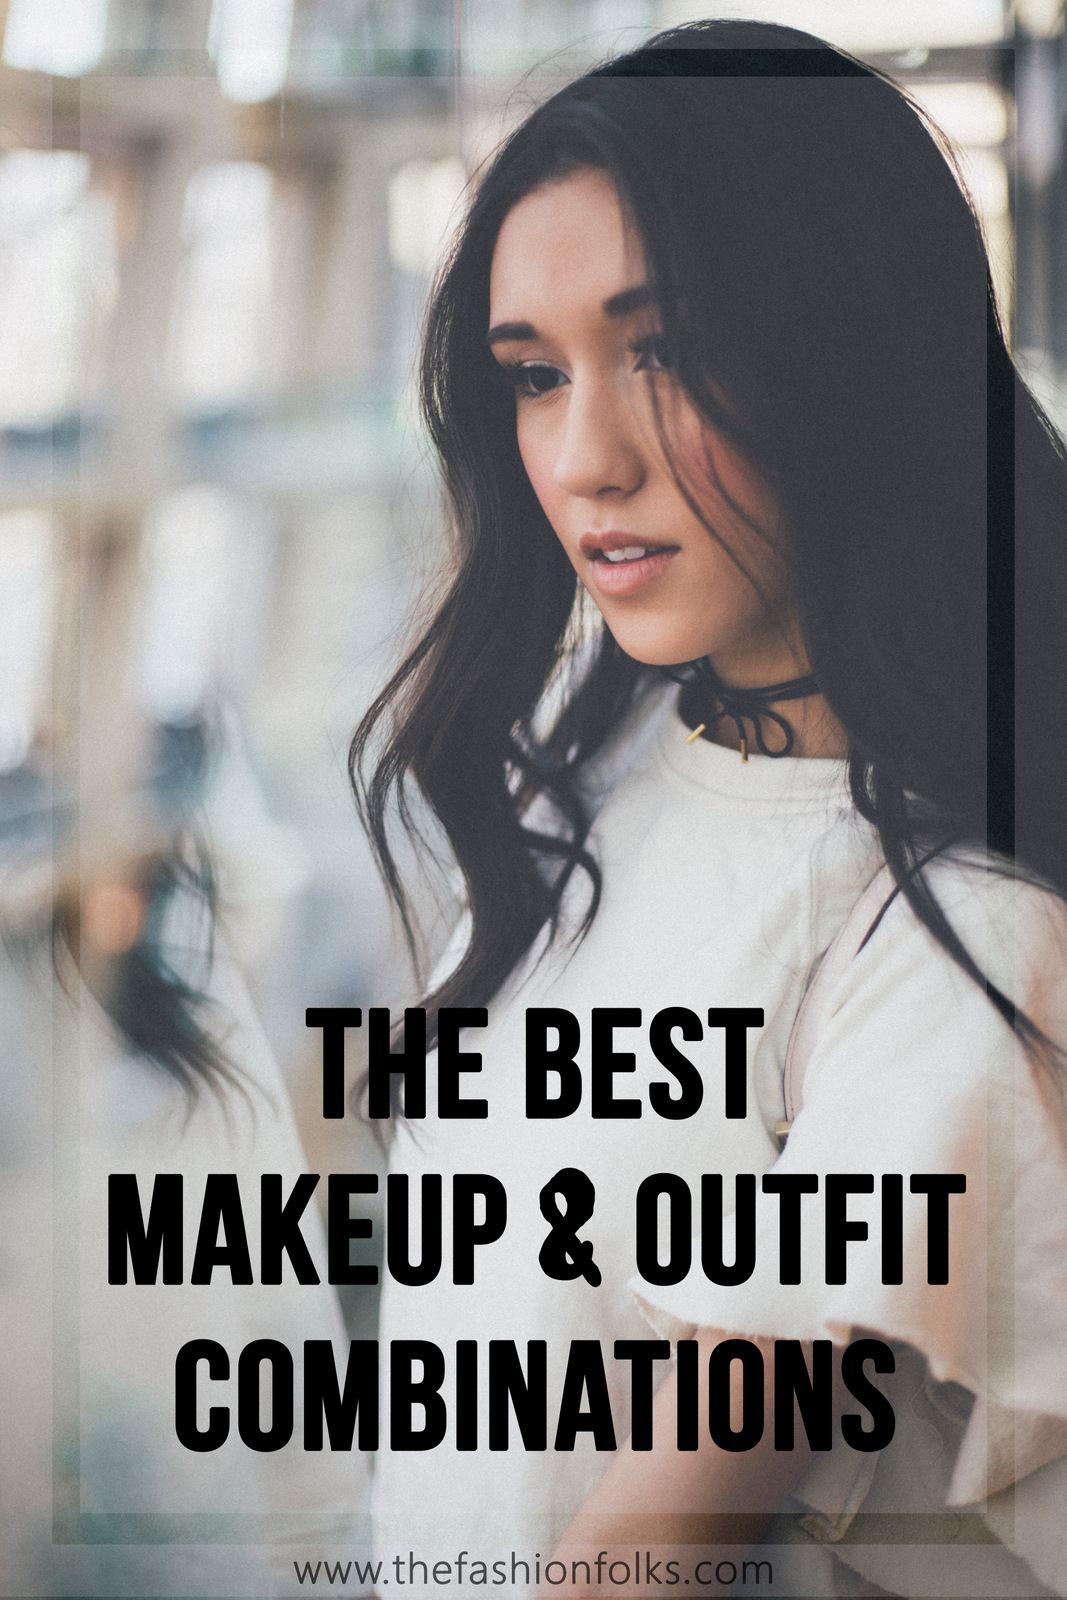 The Best Makeup And Outfit Combinations - The Fashion Folks